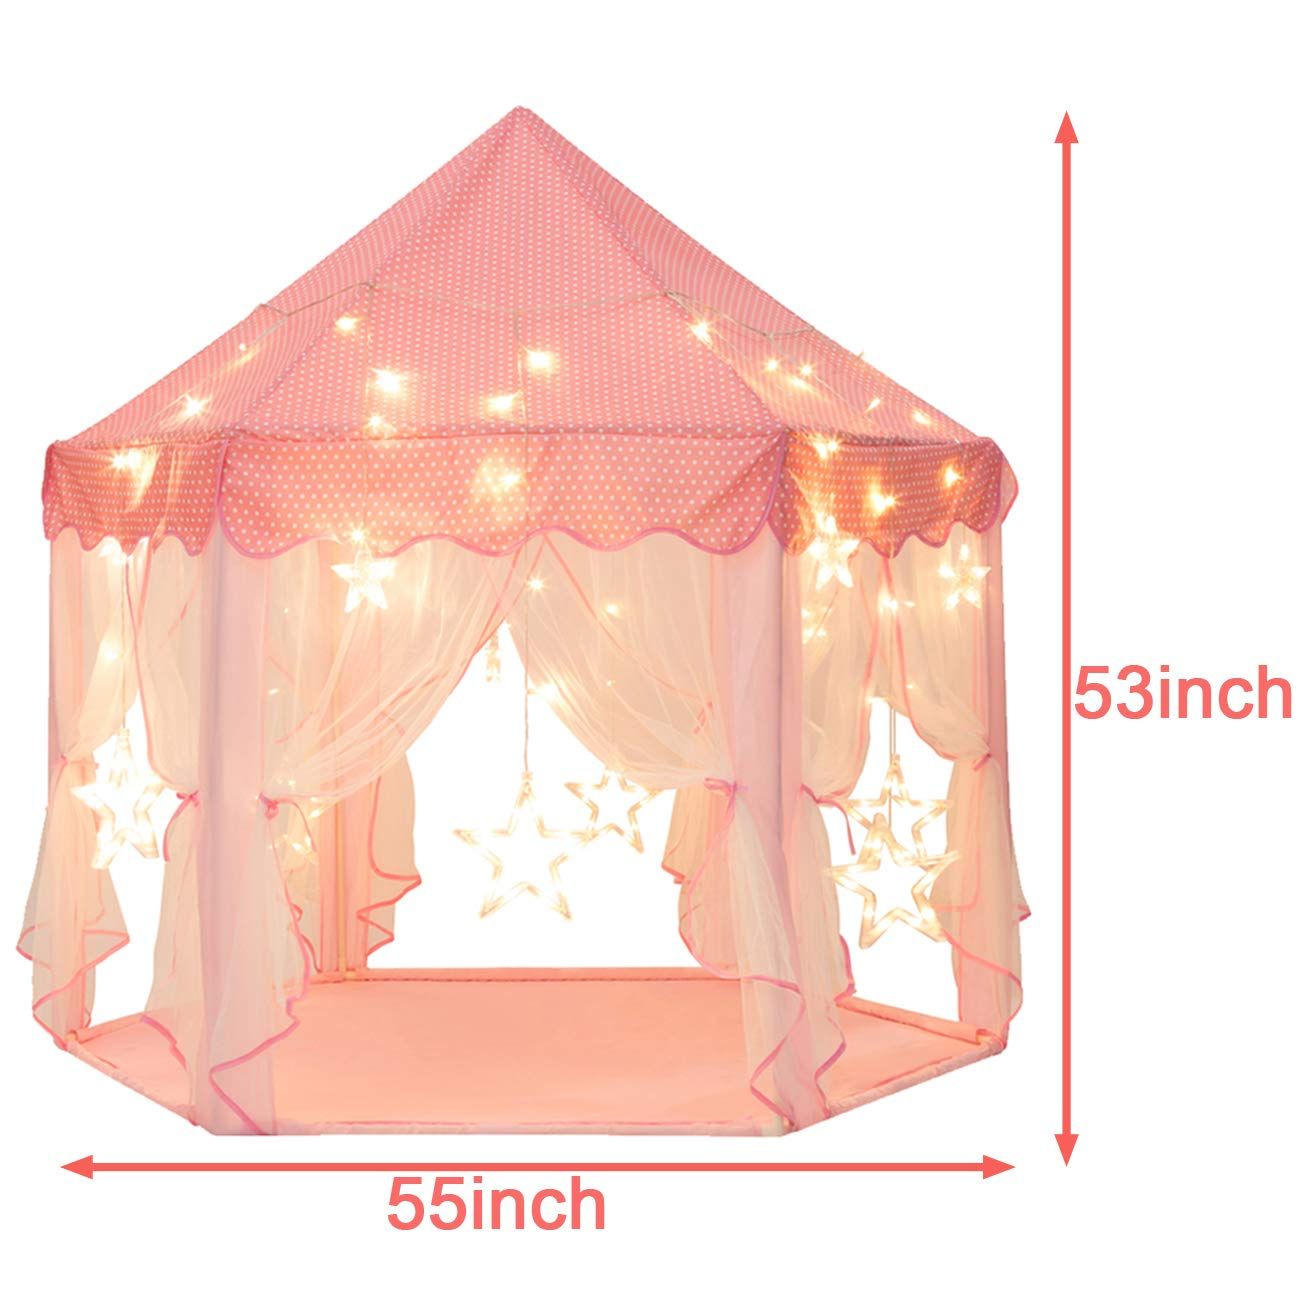 Sunnyglade 55'' x 53'' Princess Tent with 8.2 Feet Big and Large Star Lights Girls Large Playhouse Kids Castle Play Tent for Children Indoor and Outdoor Games by Sunnyglade (Image #4)